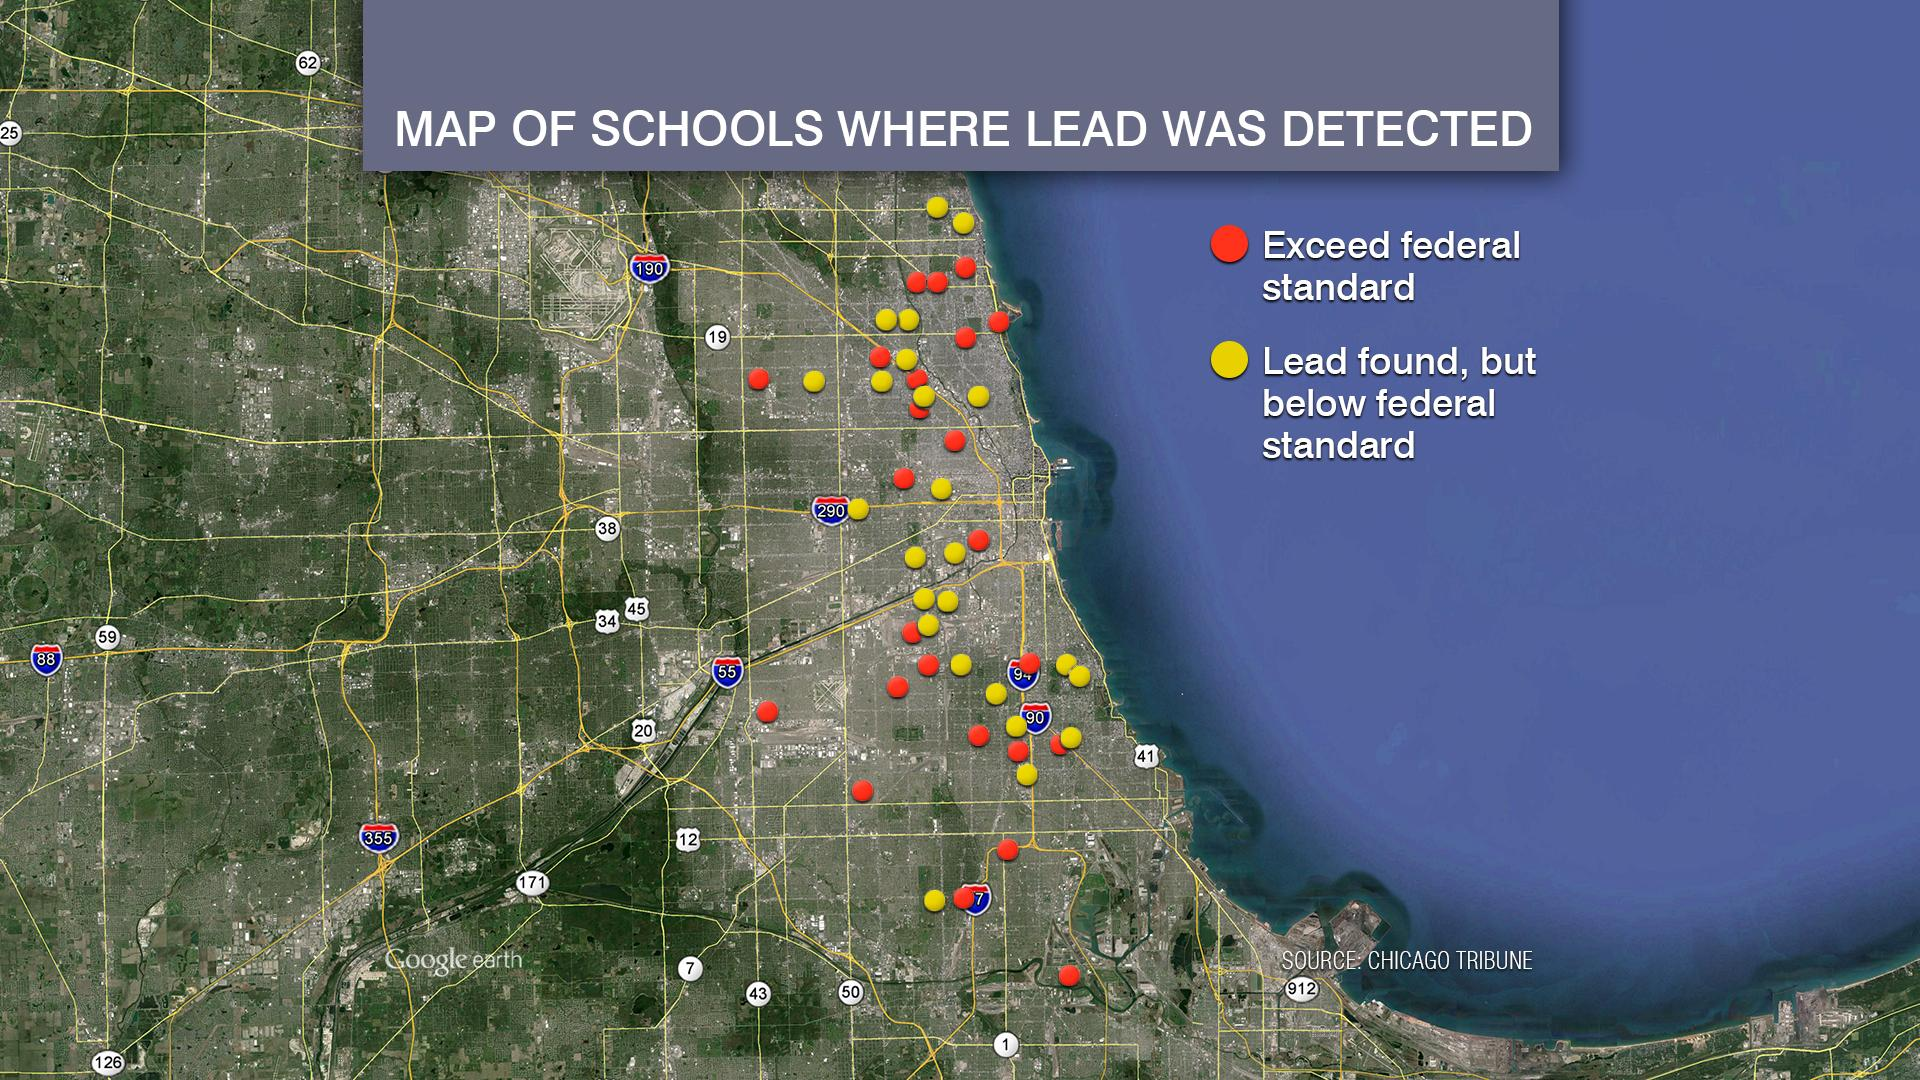 Chicago Public Schools officials released data last year showing high lead levels in water at 113 CPS schools, some of which are shown here.